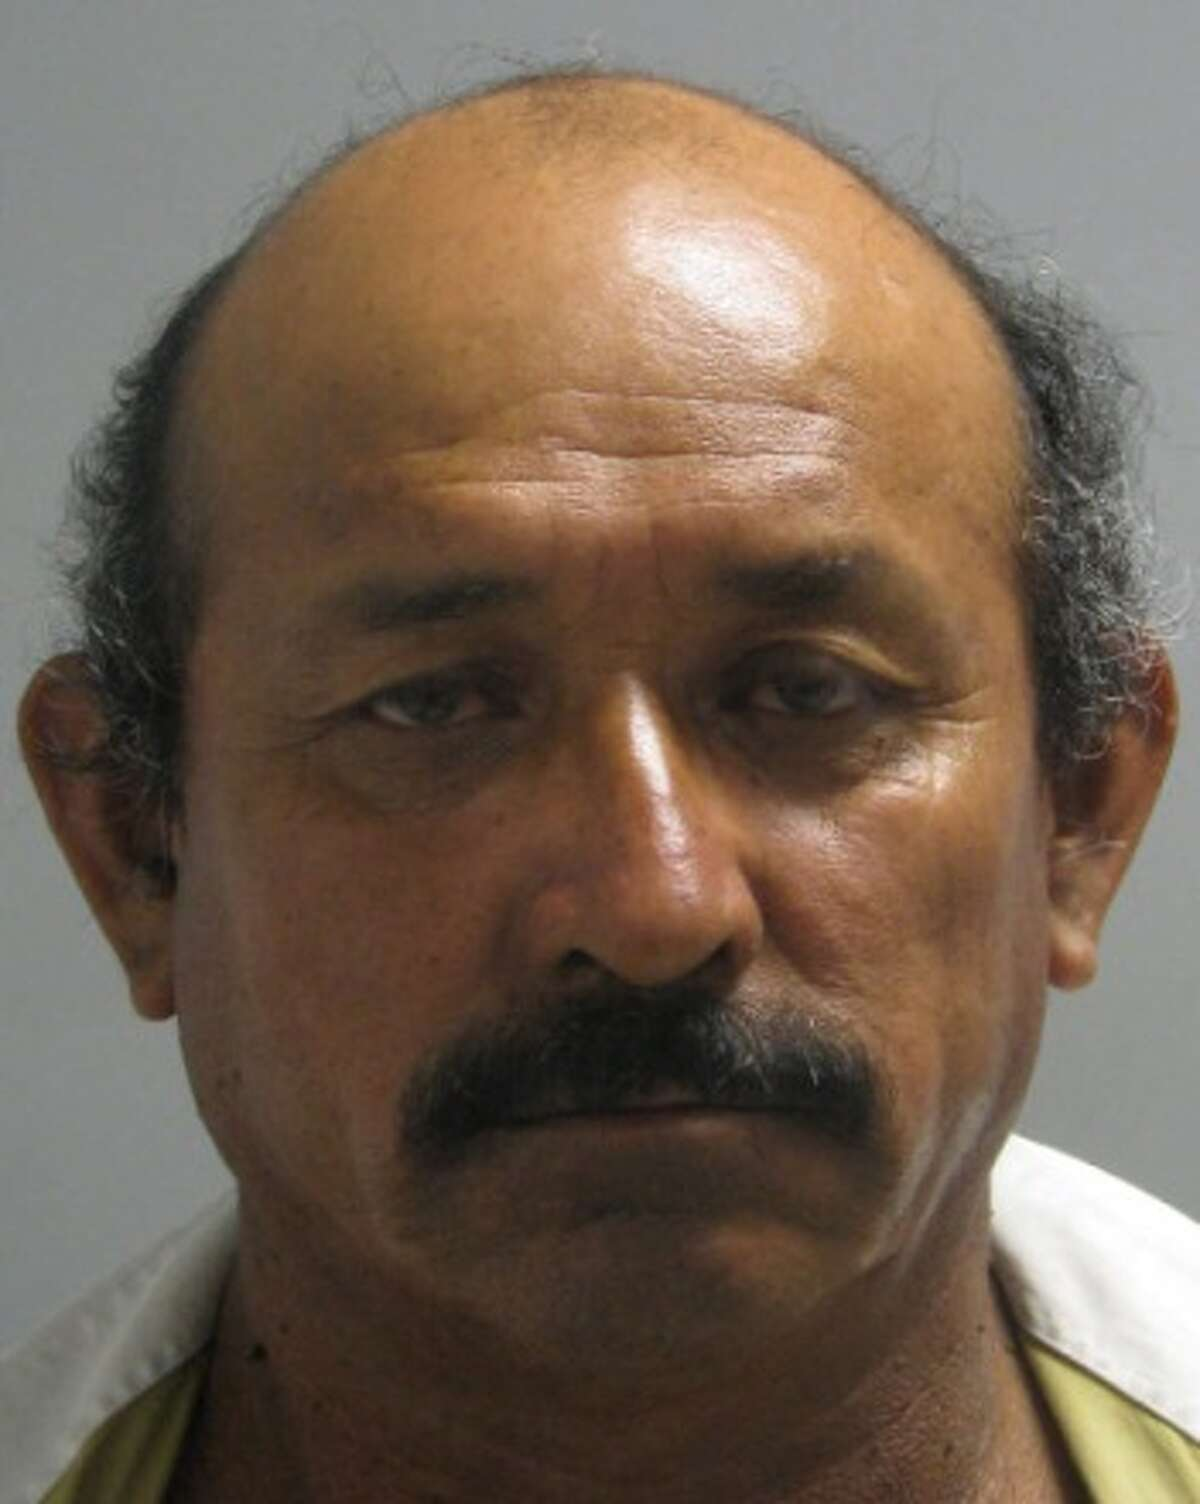 Rosendo Salazar, 56, was arrested Thursday, Sept 22, 2016, and charged with prostitution, a Class B misdemeanor, during an undercover sting operation in the 500 block of FM 1960 in north Harris County. (Harris County Precinct 4 Constable's Office)